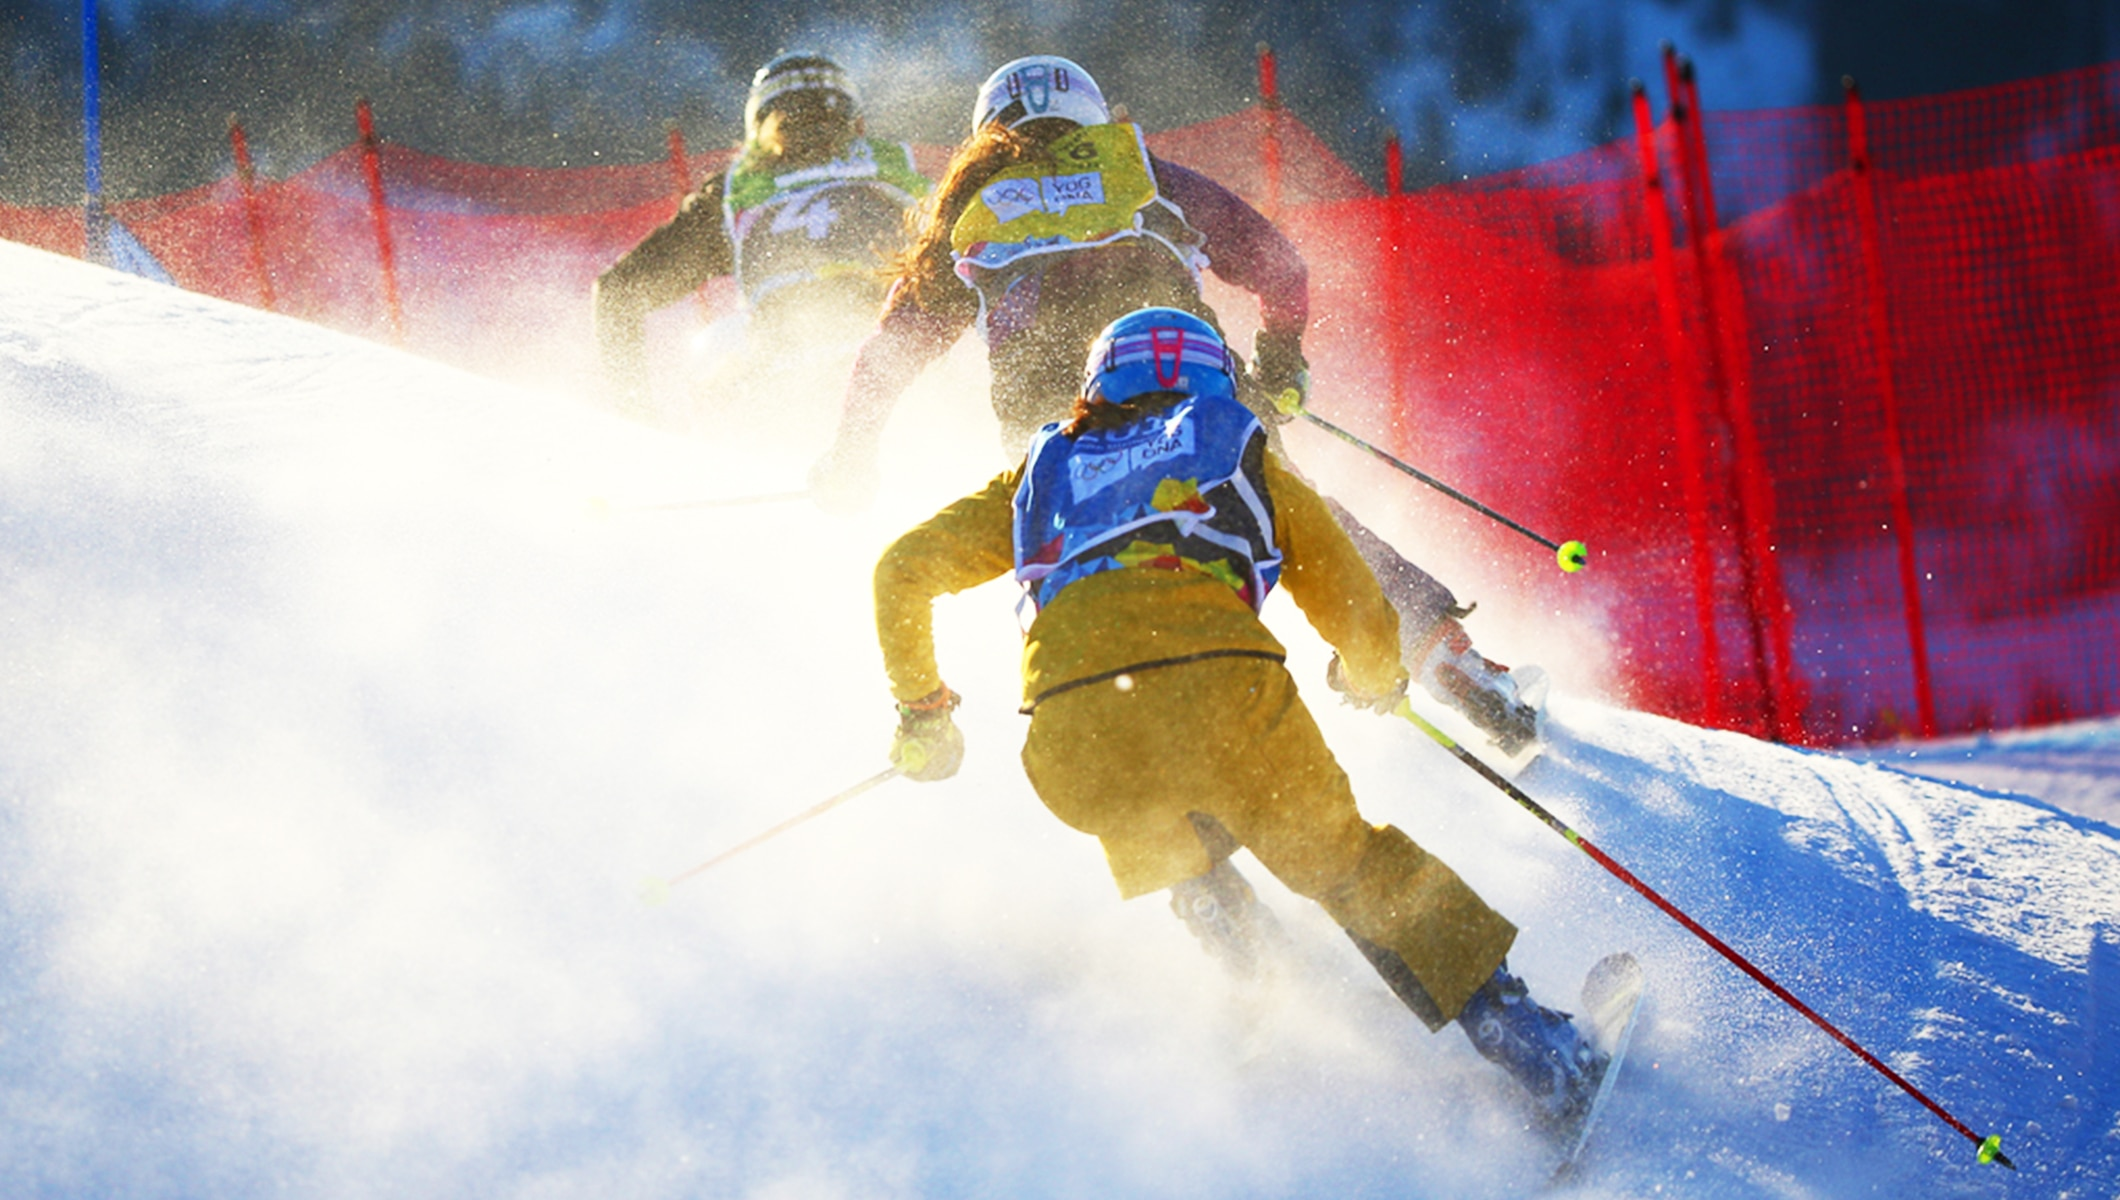 Alpine Skiing At The 2020 Olympic Winter Games.Sandy Bremond Speeding Towards Her Olympic Dream Olympic News